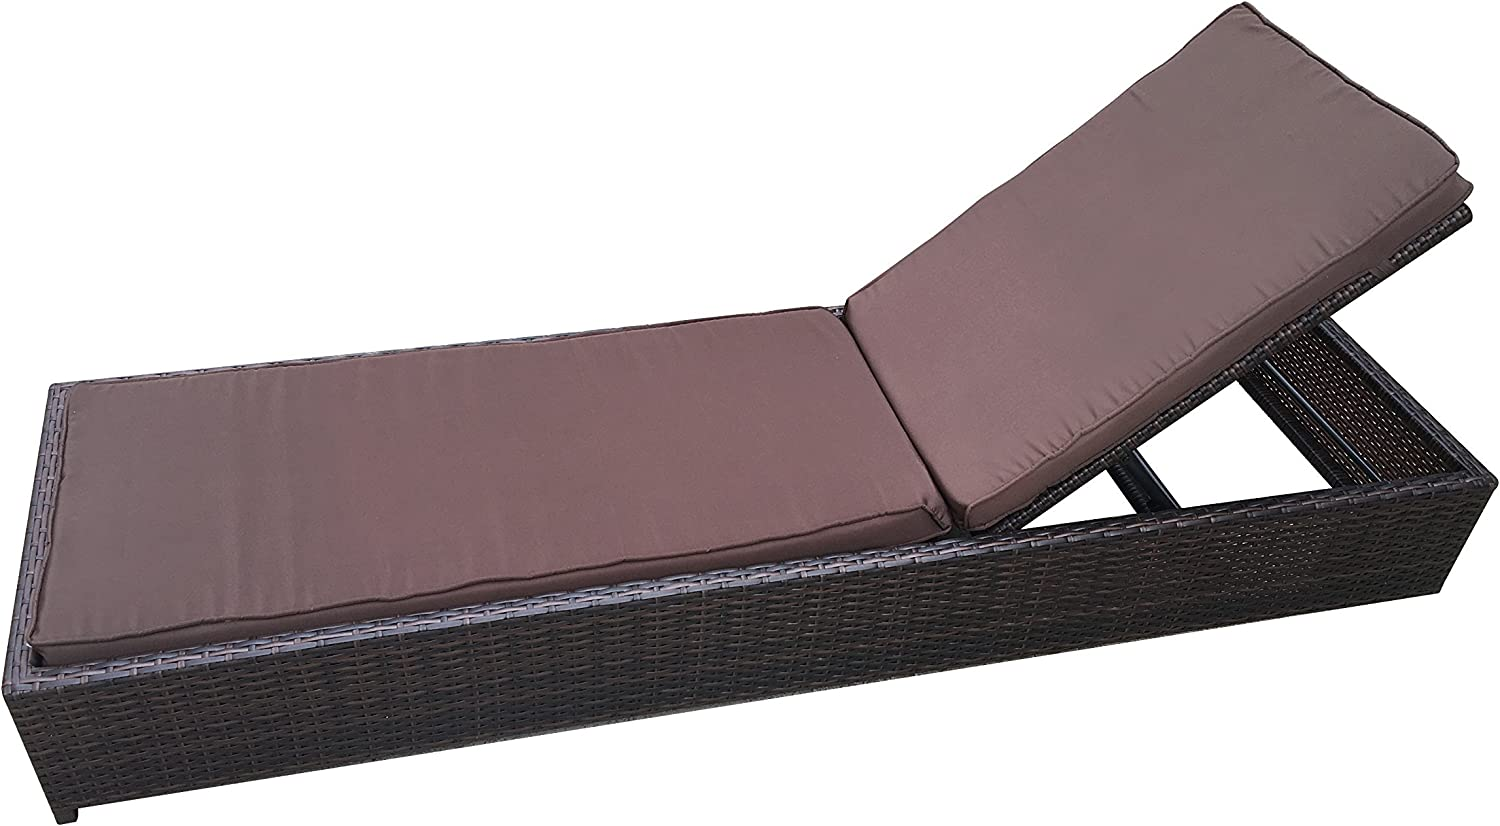 Divano Roma Furniture Modern Rattan Outdoor Lounge Chaise – All Weather Patio Chair Brown Brown